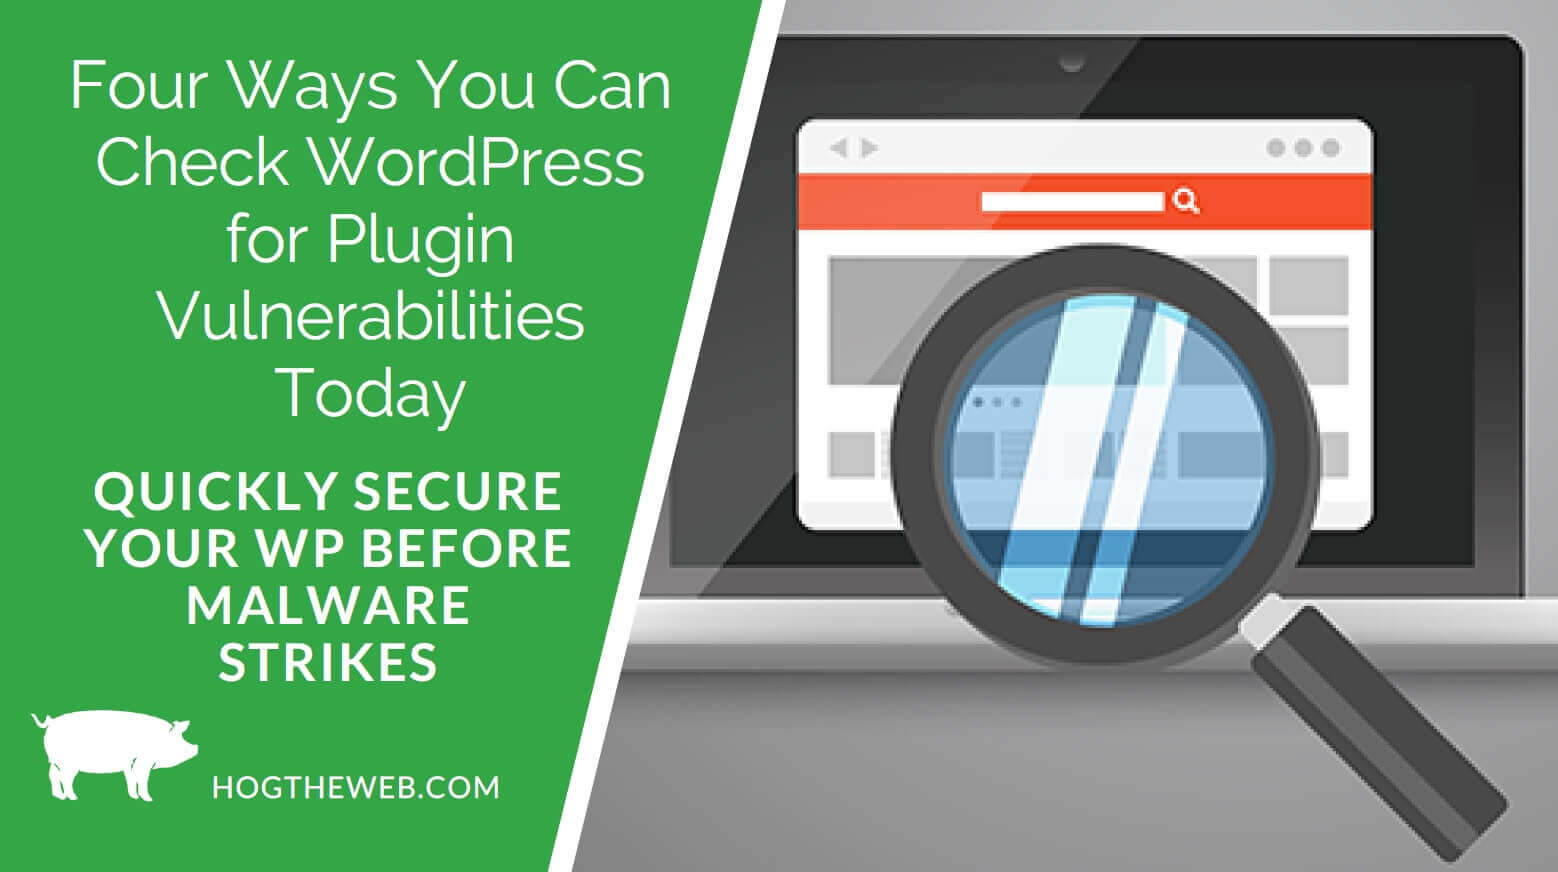 4 Ways You Can Check WordPress for Plugin Vulnerabilities Today